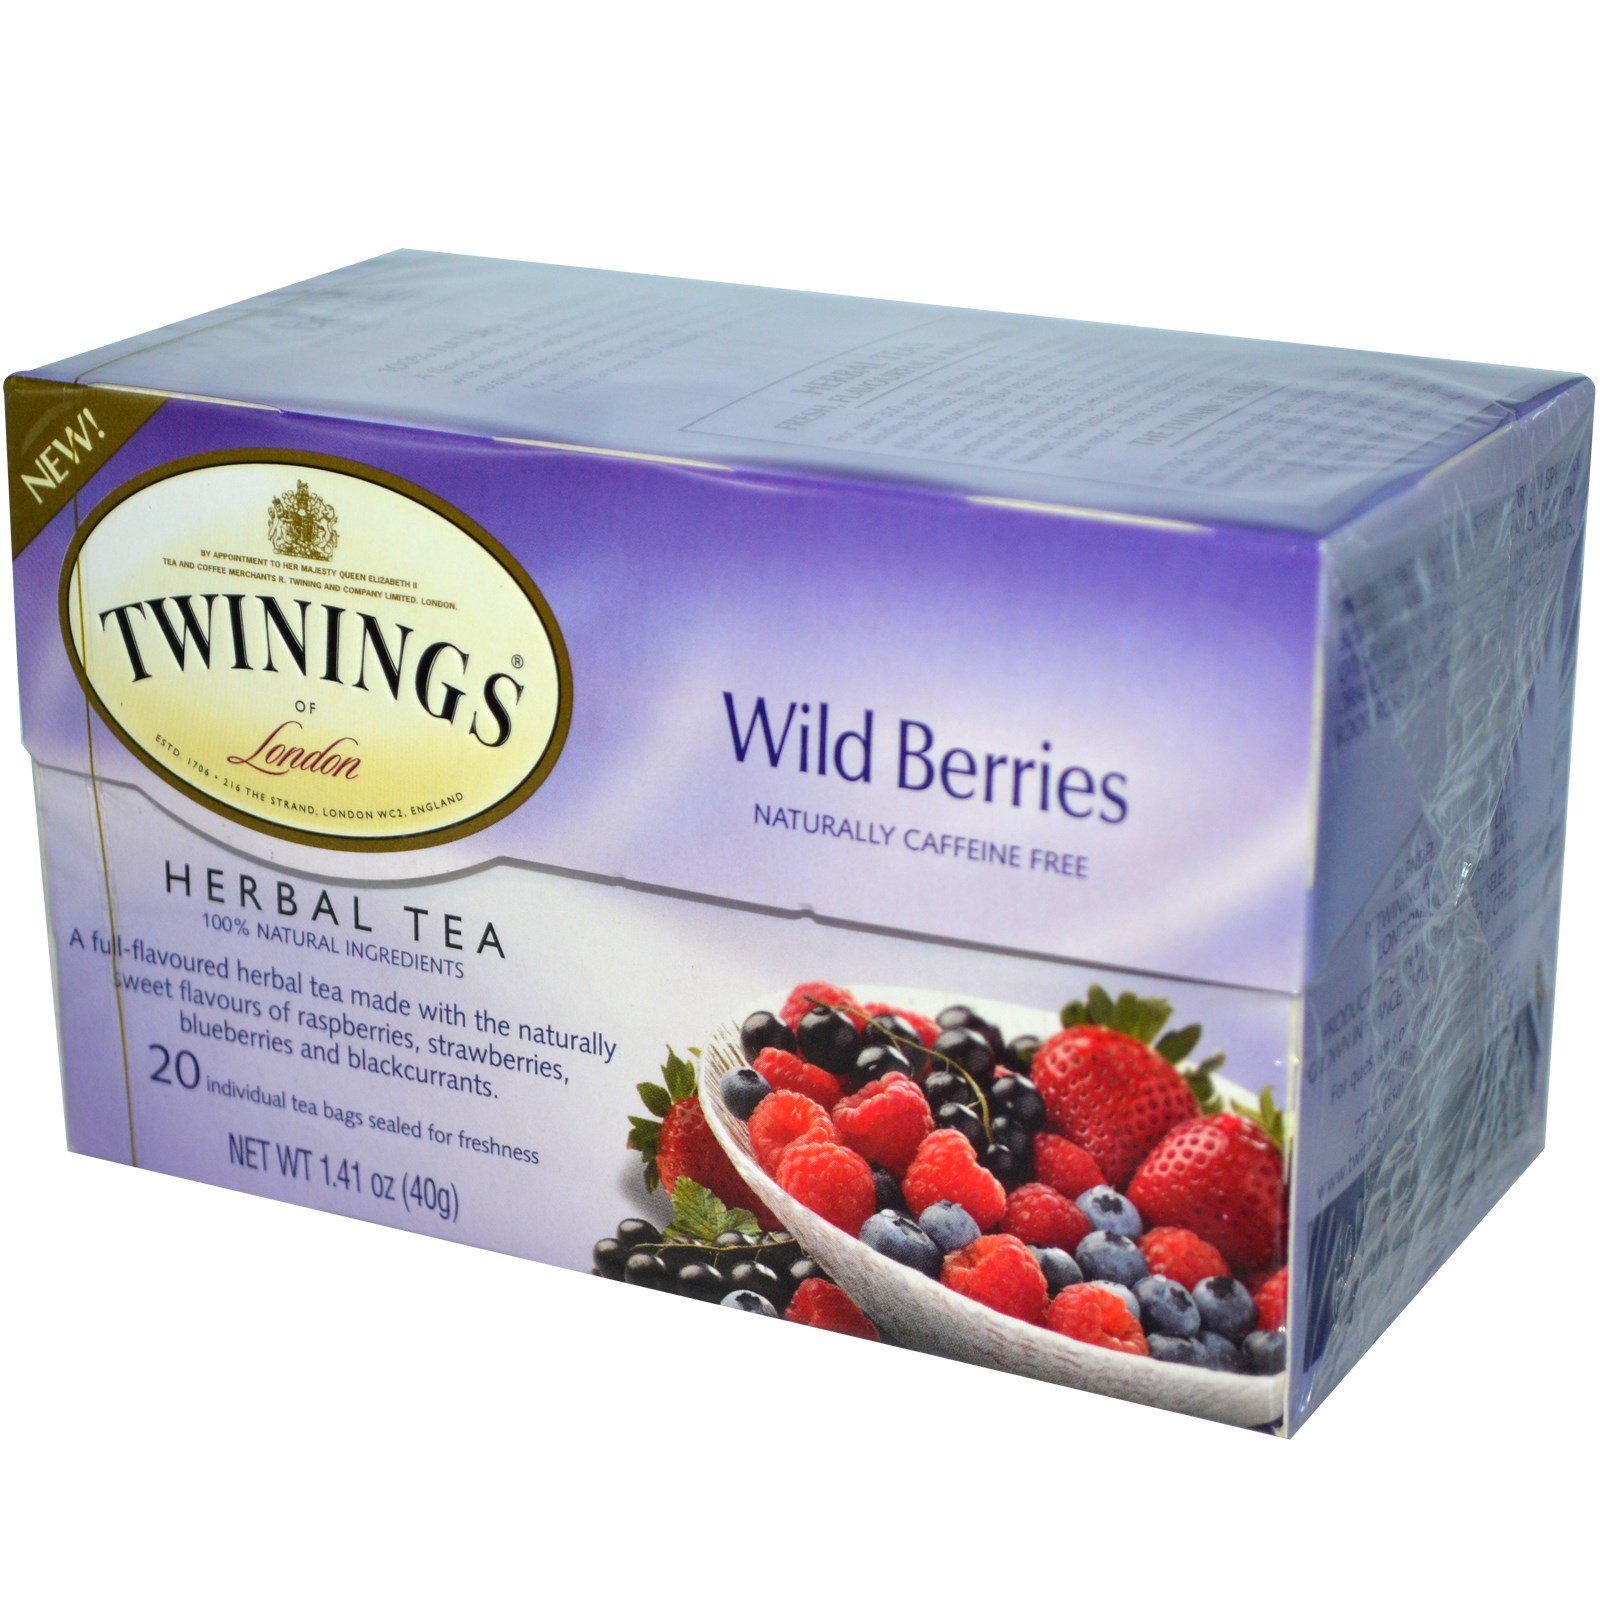 Twinings Herbal Tea Wild Berries Caffeine Free 20 Tea